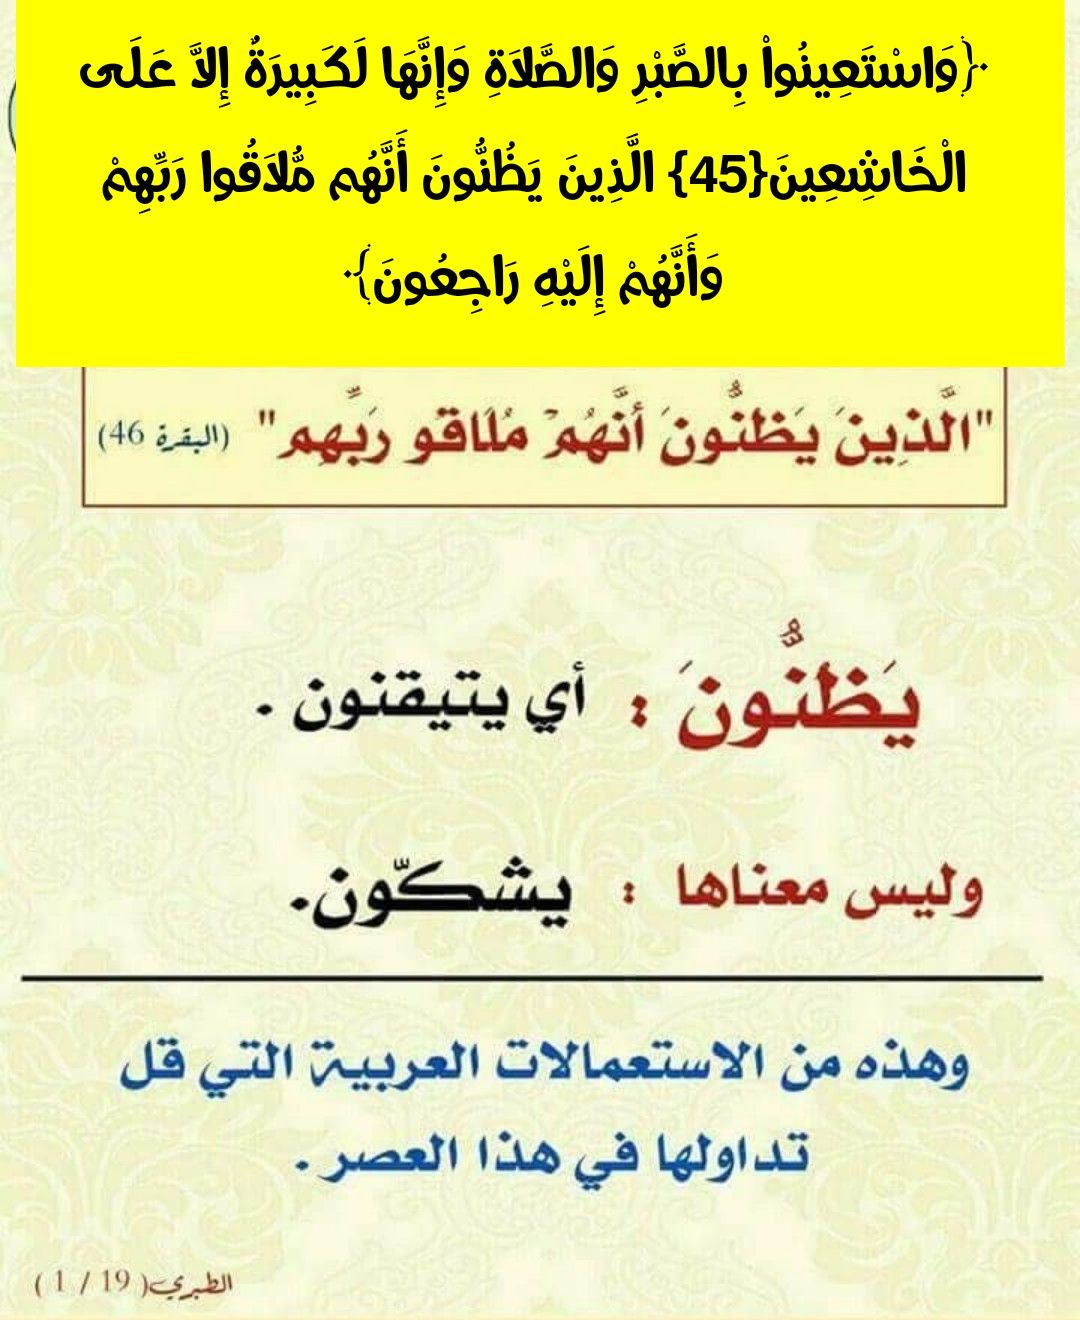 Pin By Mira On Arabic Langauge What Is Islam Arabic Langauge Arabic Language